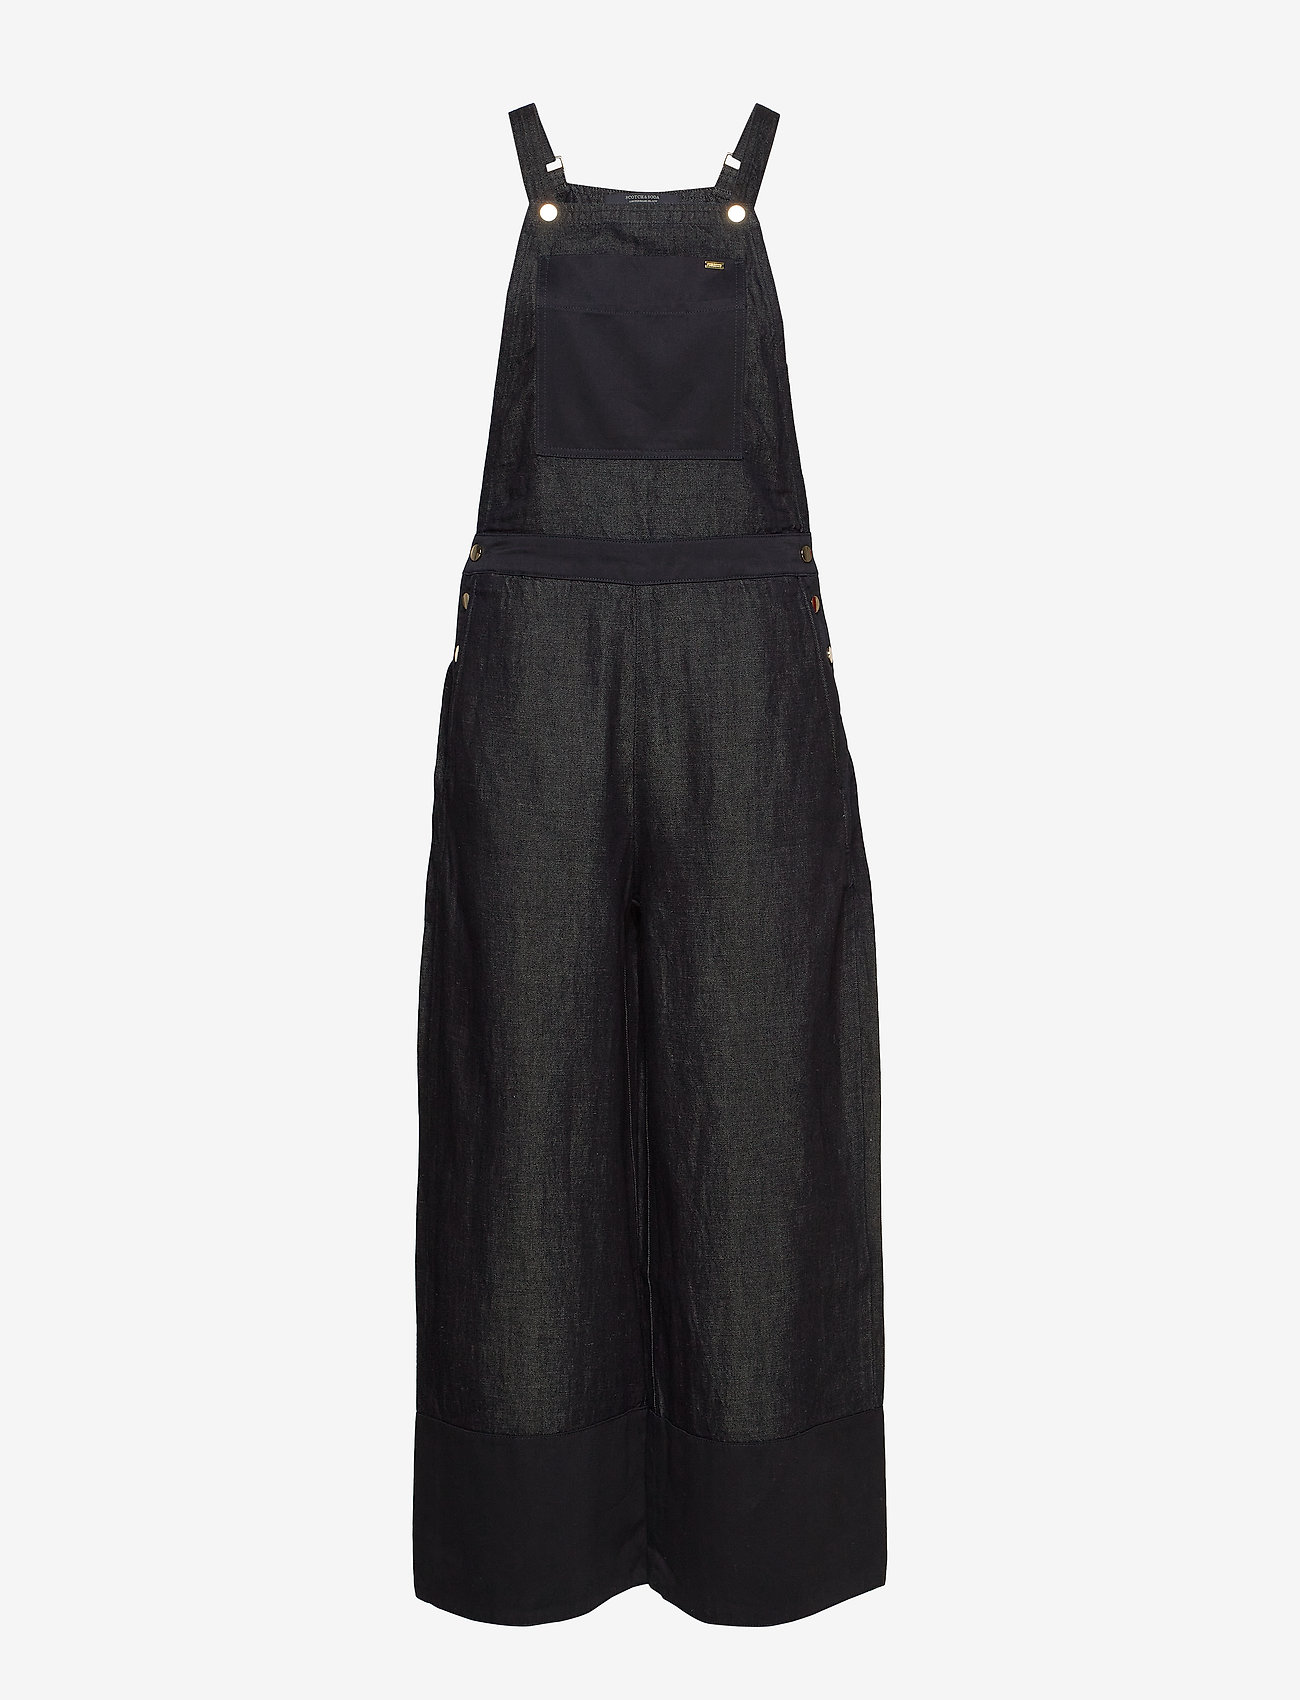 Scotch & Soda - Ams Blauw Indigo dungaree in cotton linen fabric - combinaisons - back in nimes - 0